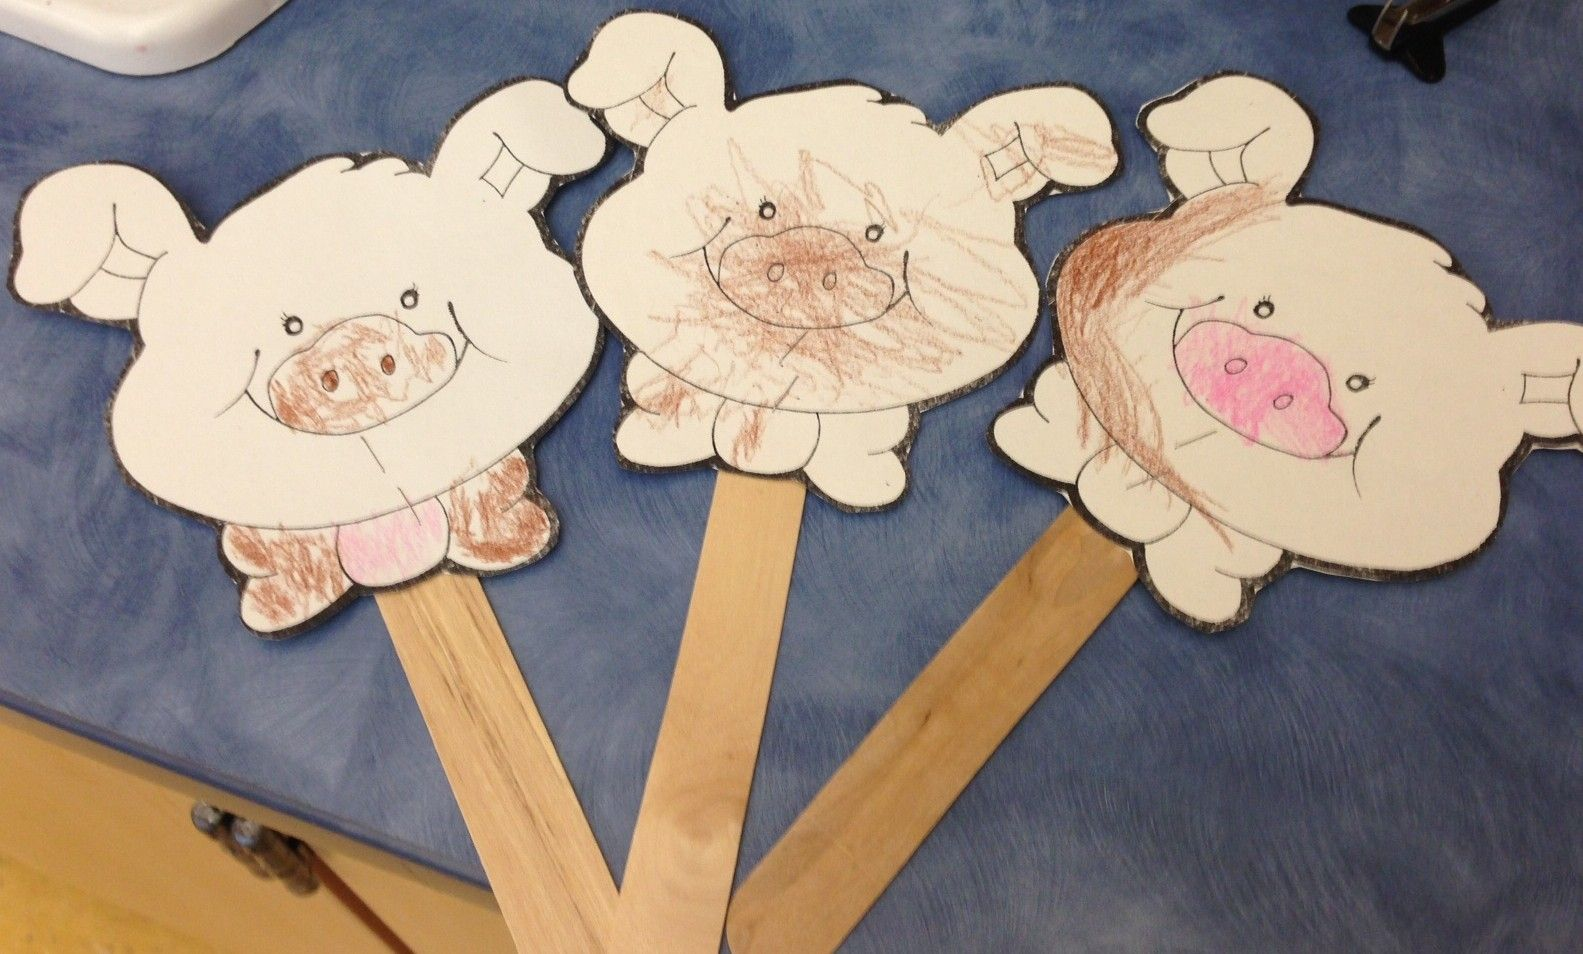 The Three Little Pigs Puppets